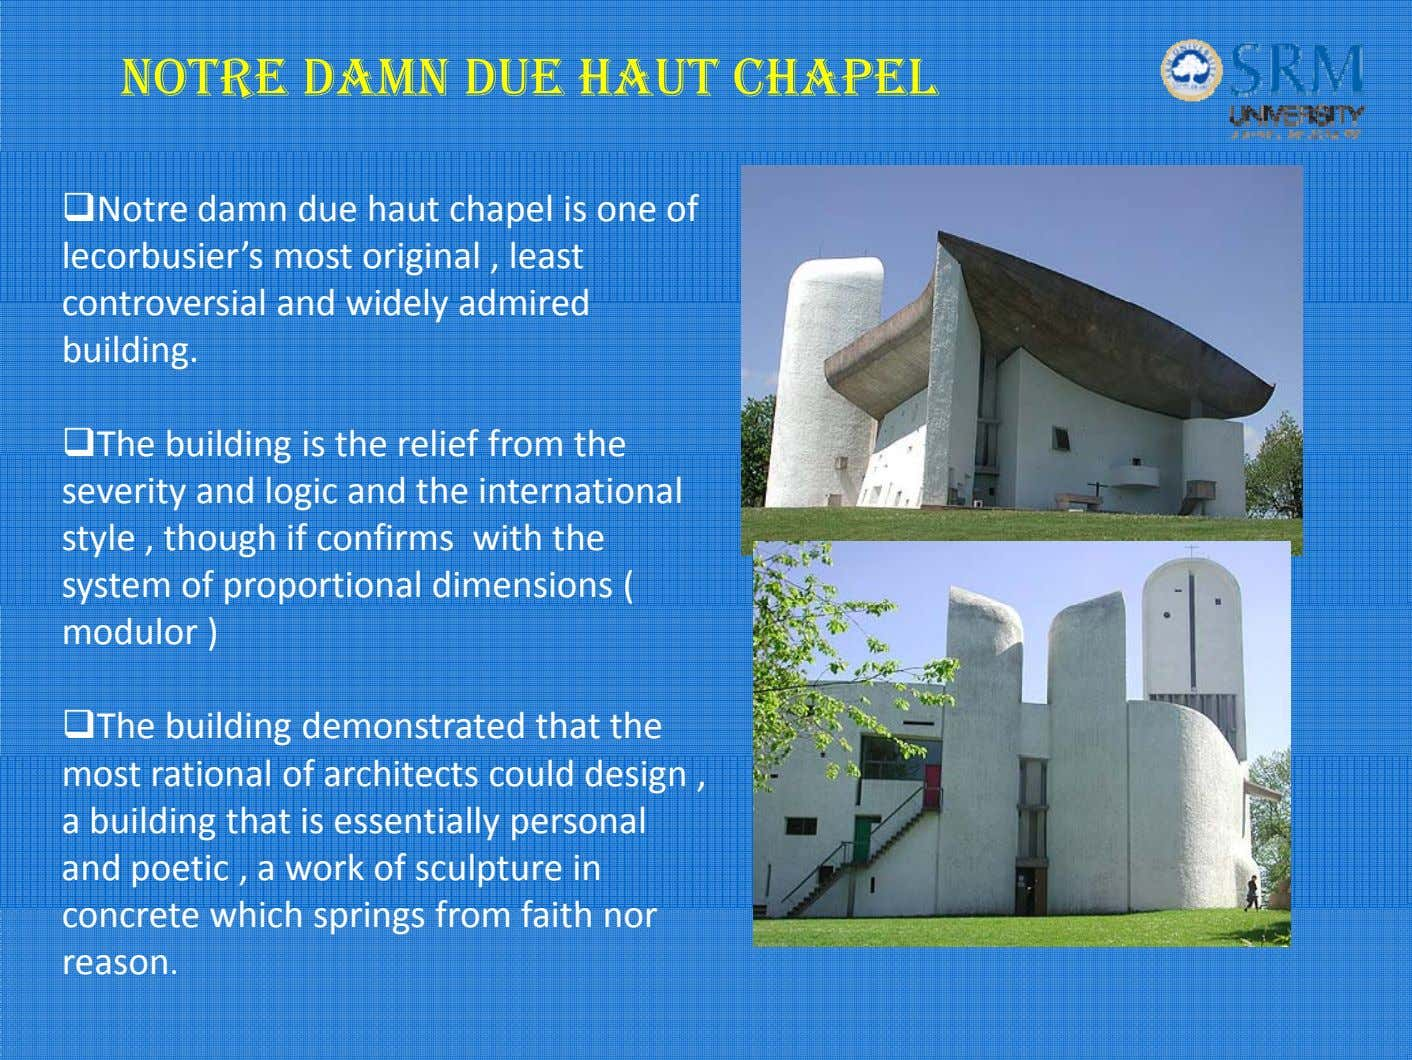 NOTRE DAMN DUE HAUT CHAPEL Notre damn due haut chapel is one of lecorbusier's most